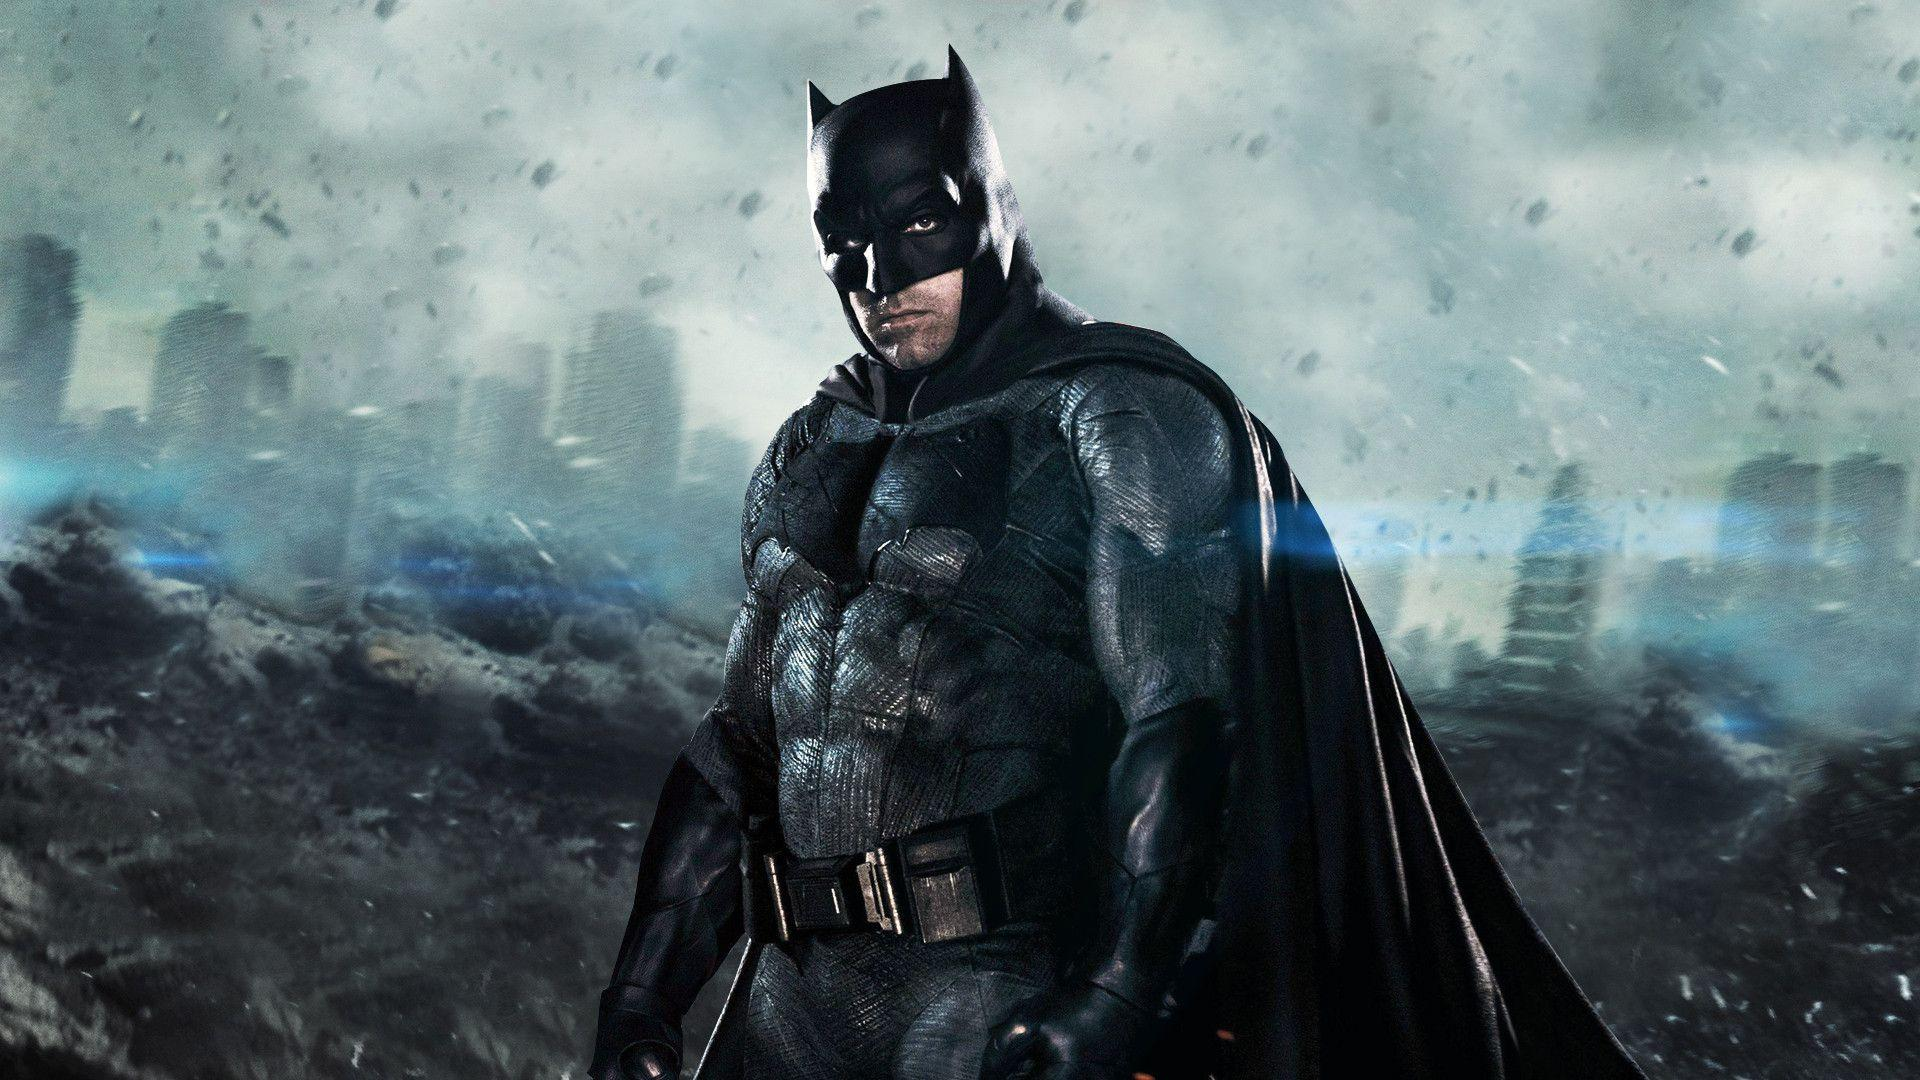 Ben Affleck Promises THE BATMAN Will Be Something Special